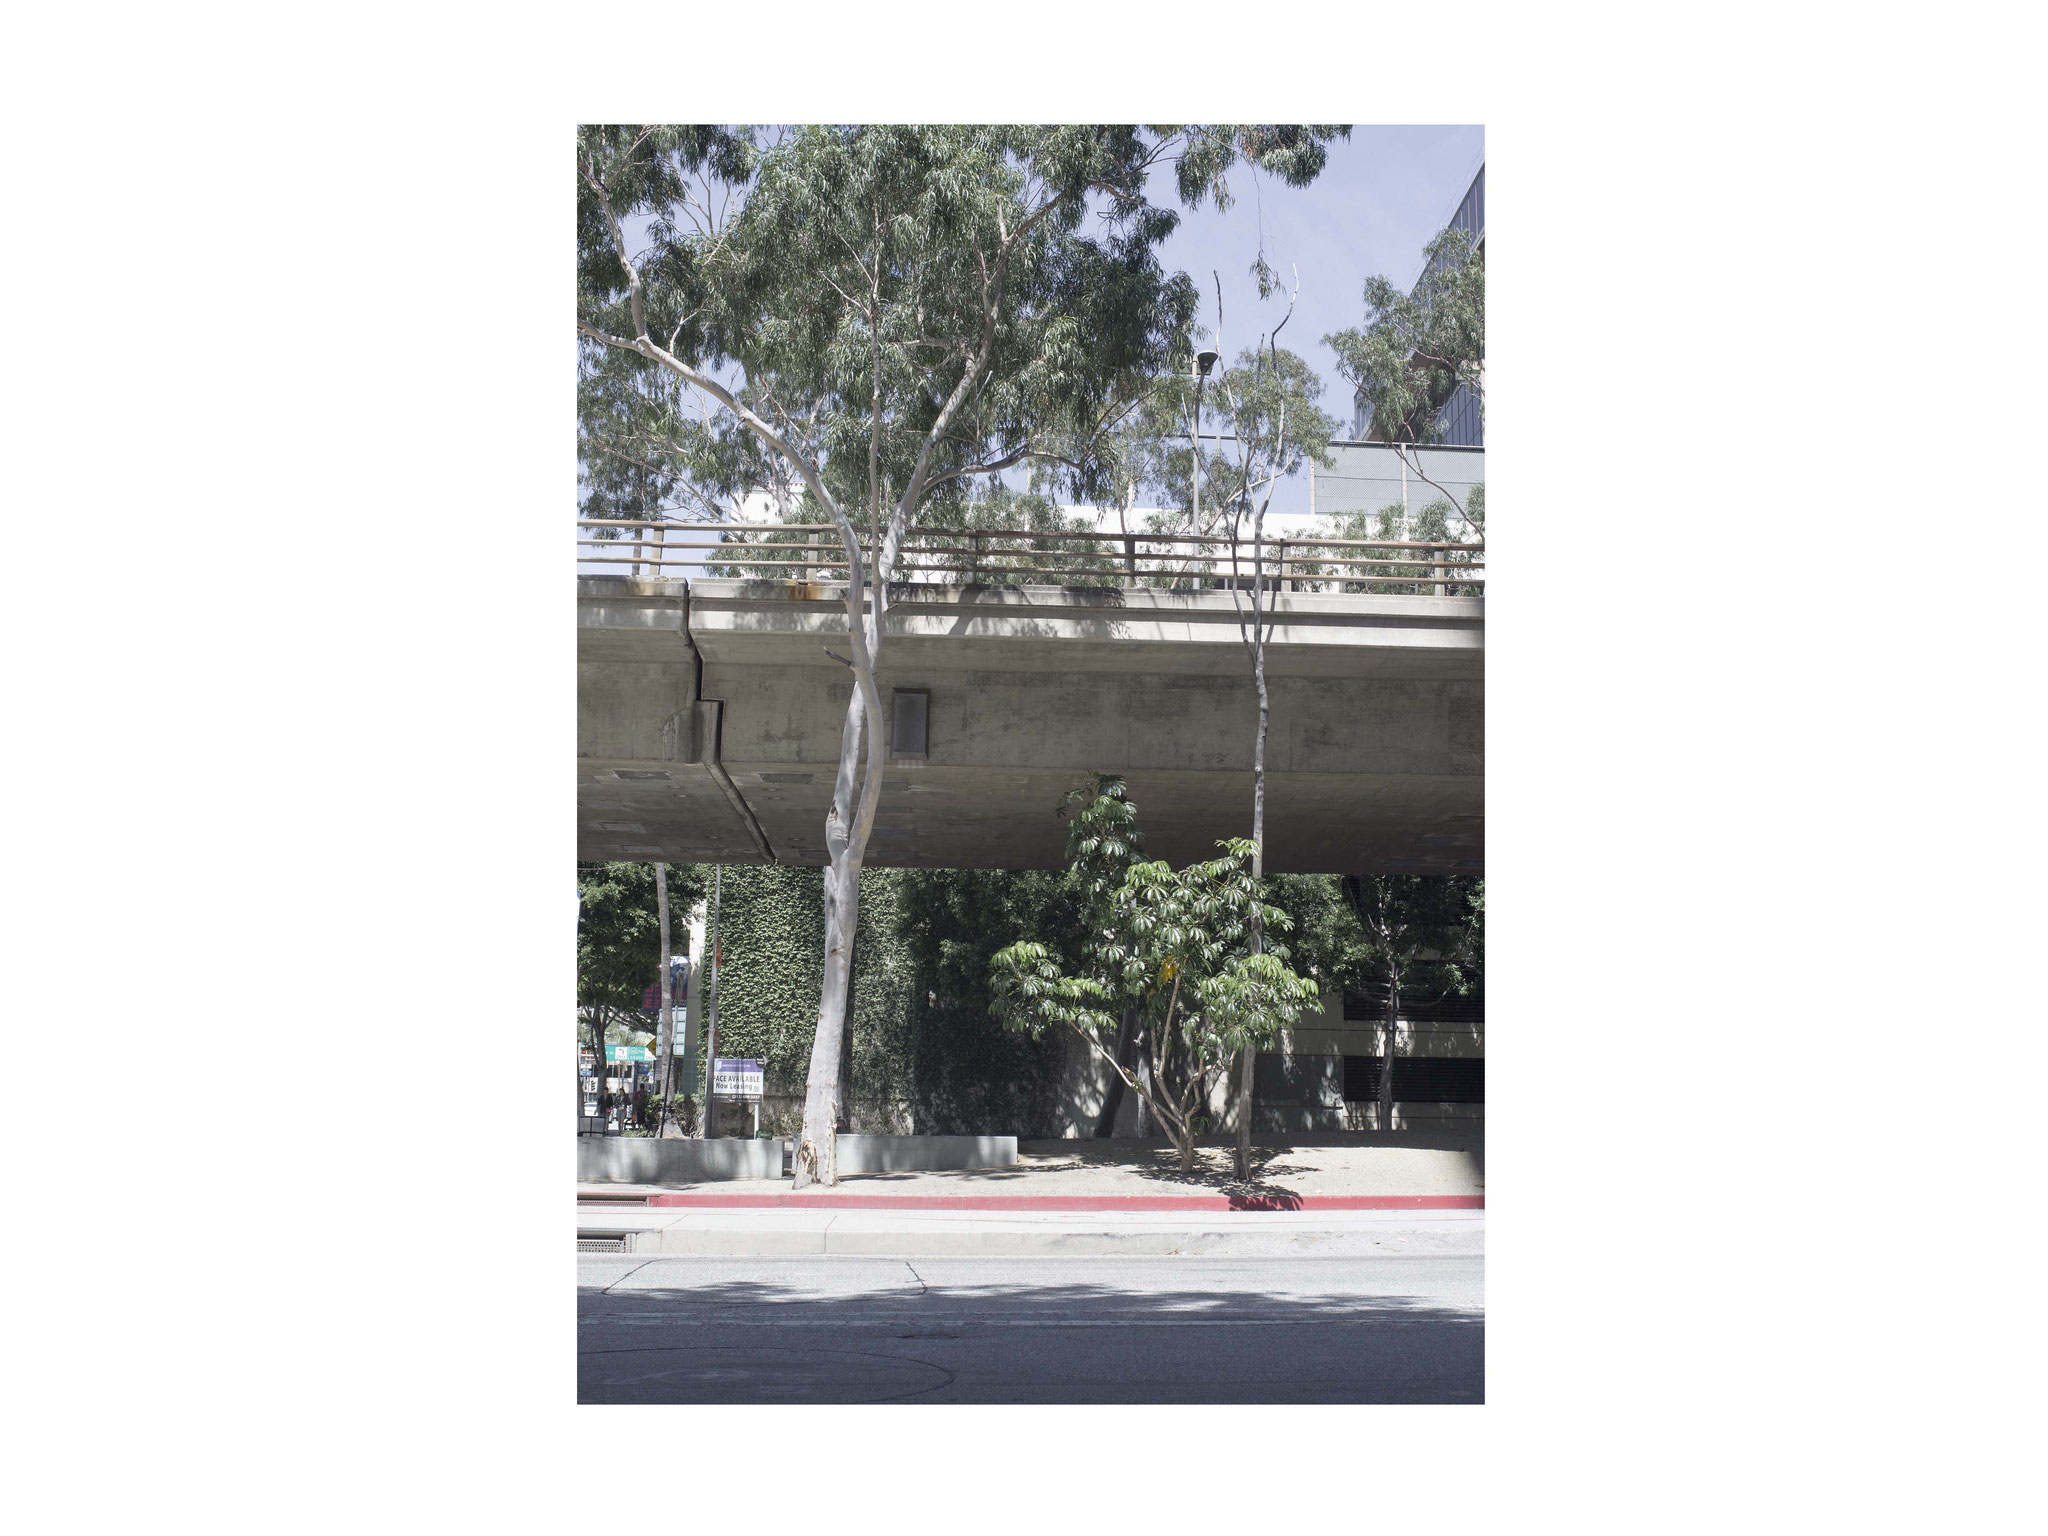 LA Under the bridge 1